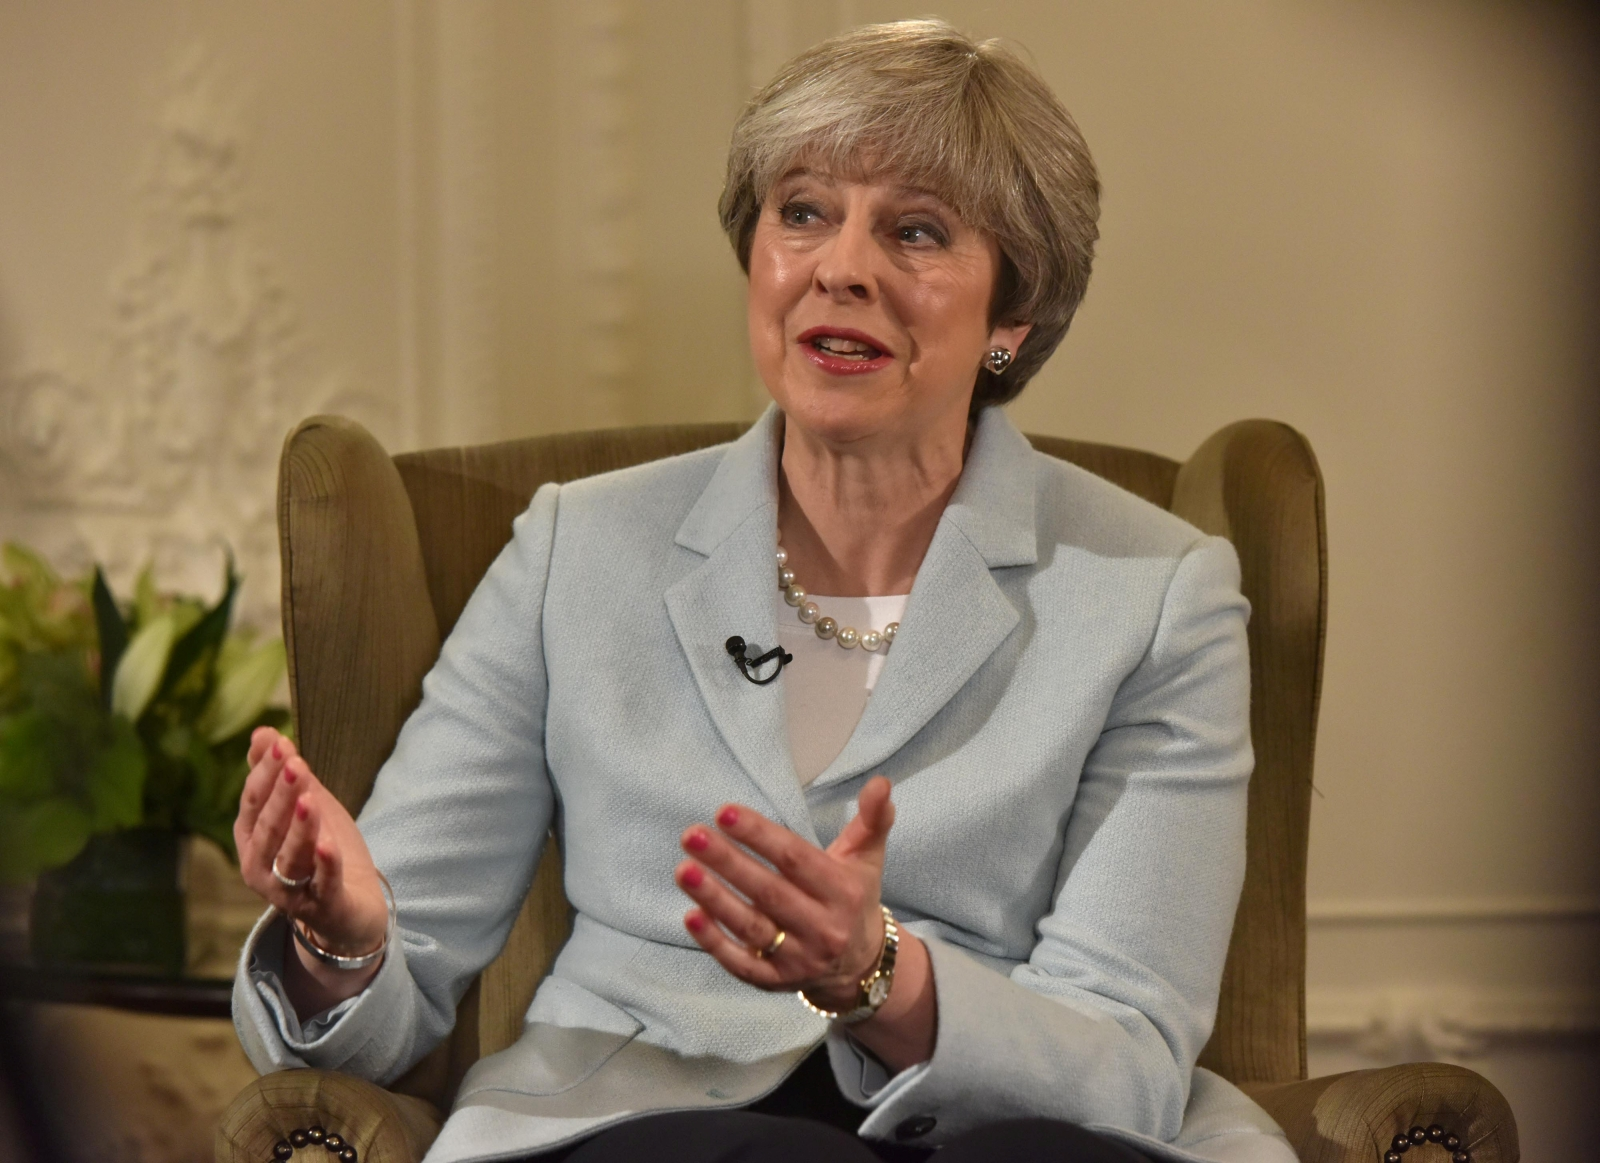 Theresa May confirms cabinet reshuffle will take place